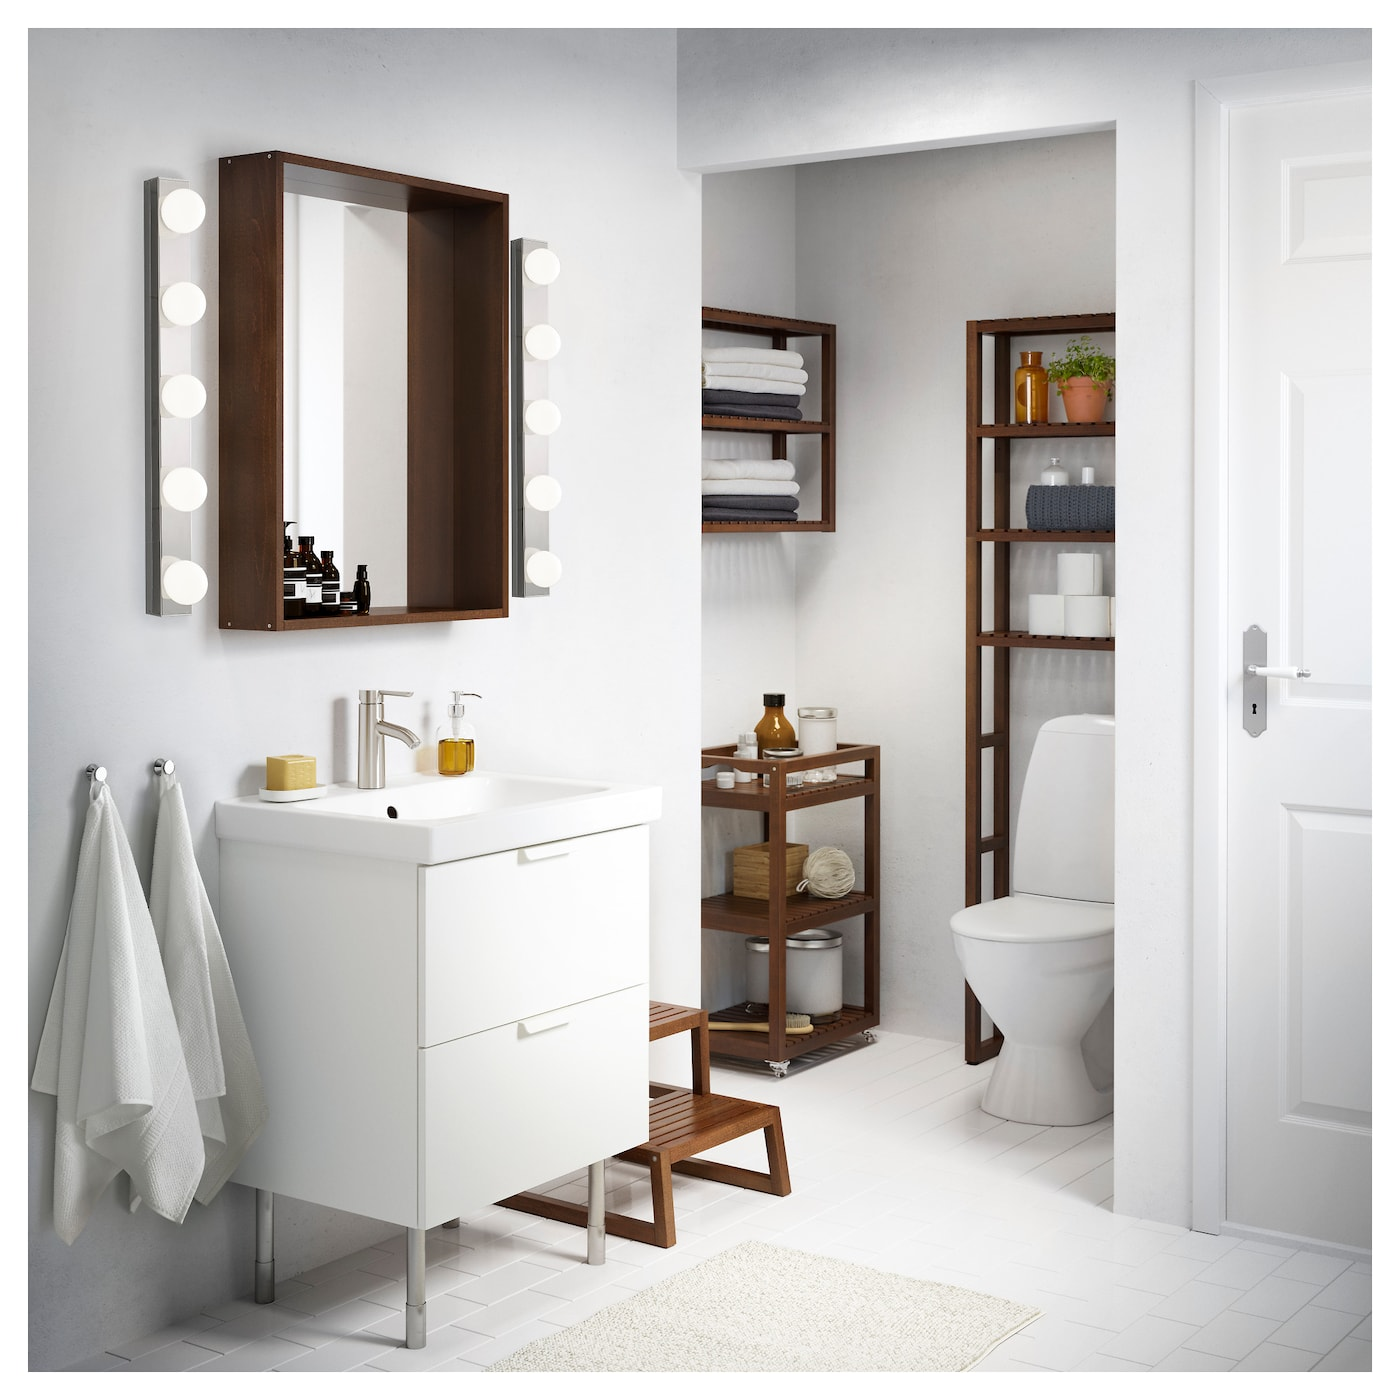 dark brown bathroom mirror molger mirror brown 80x60 cm ikea 18042 | molger mirror dark brown 0331117 ph121302 s5